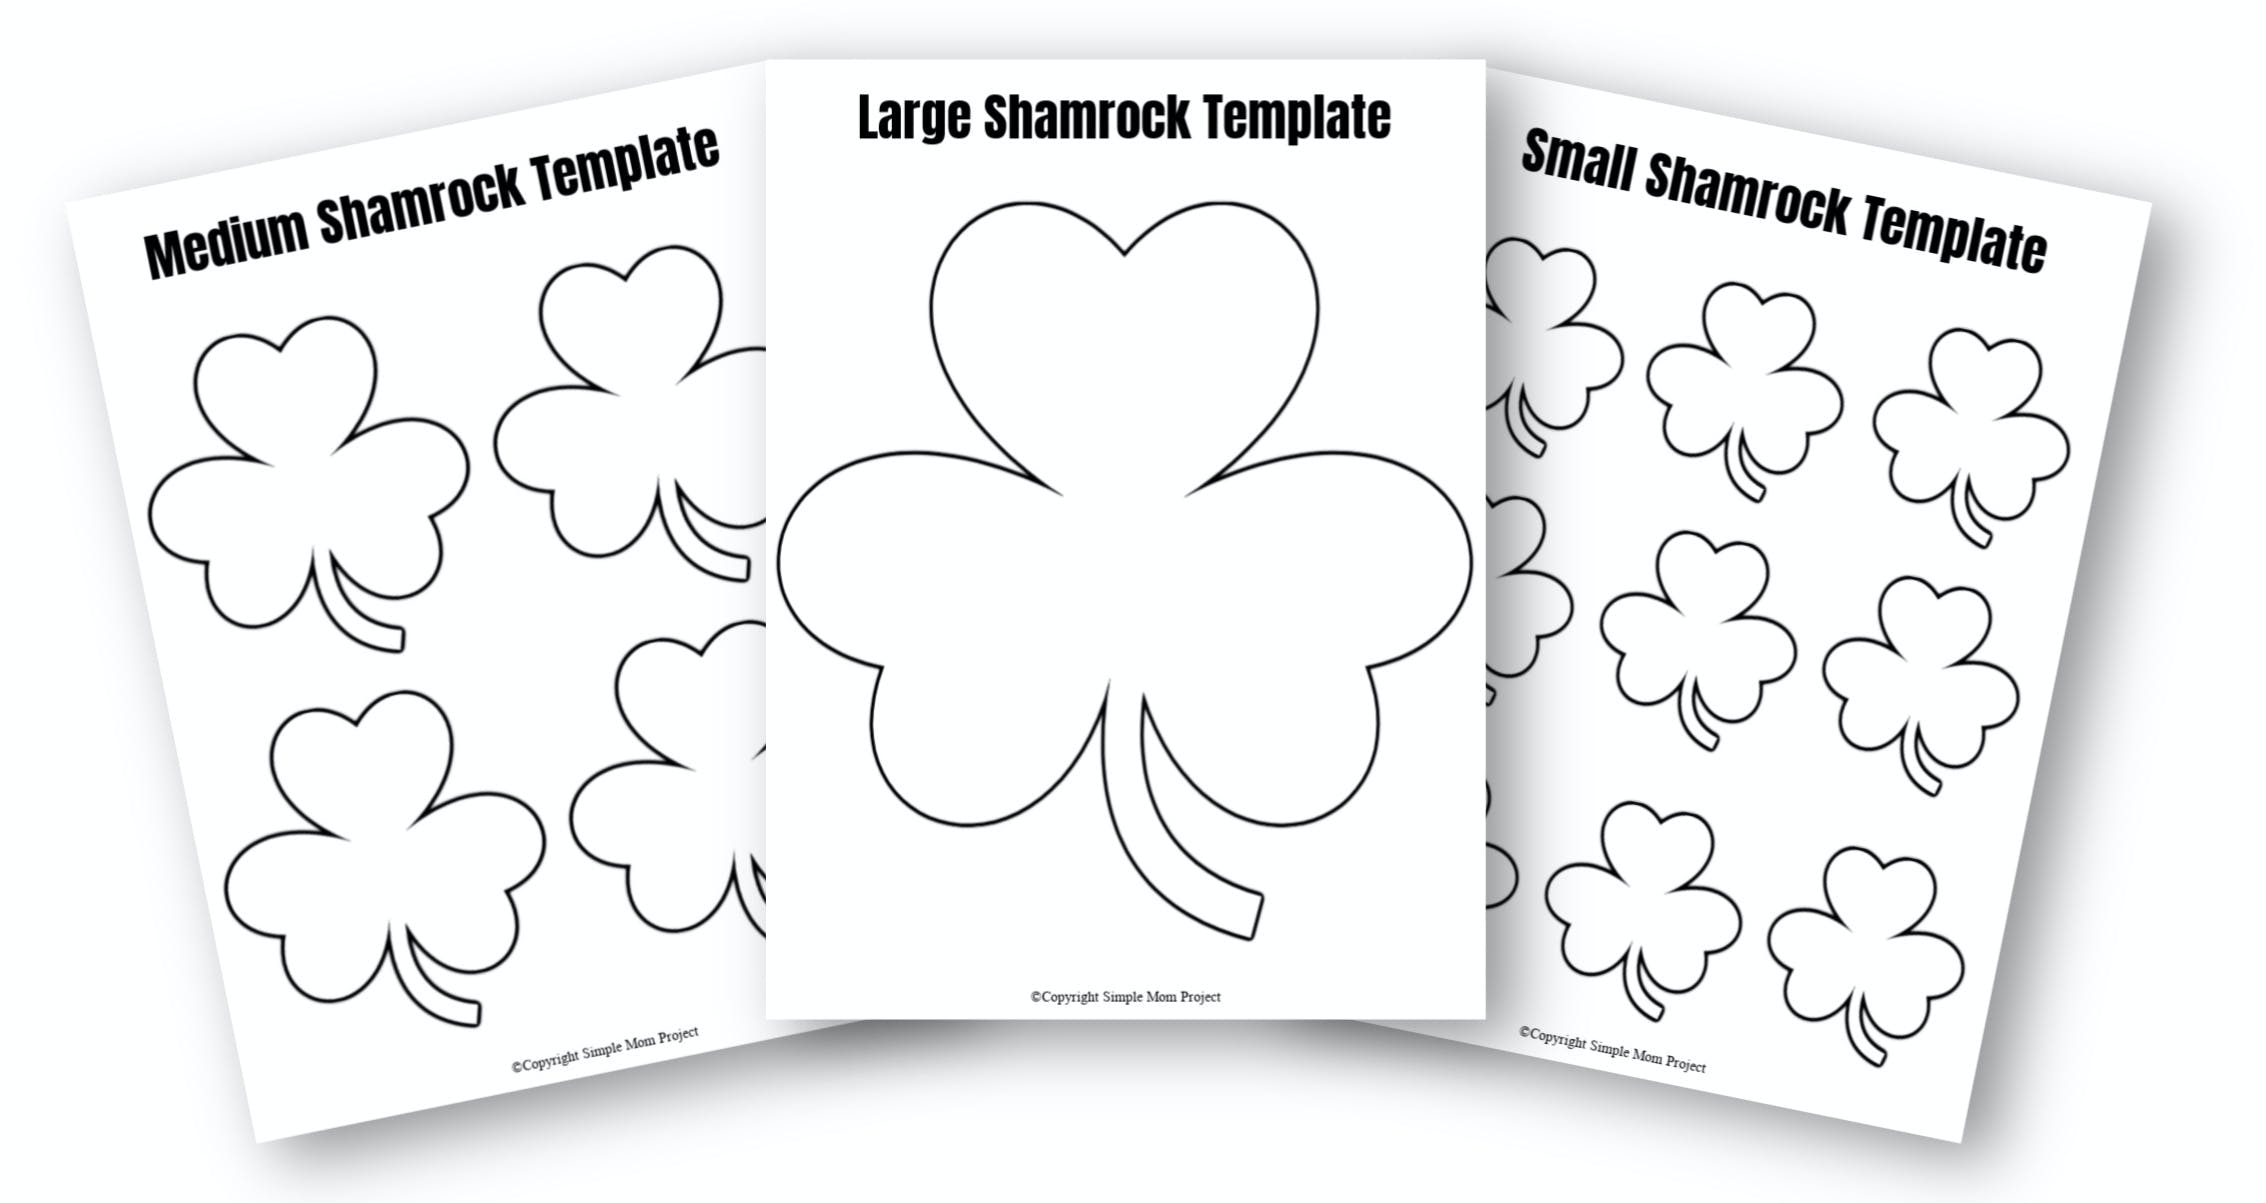 - Free Printable Shamrock Templates In Small, Medium And Large